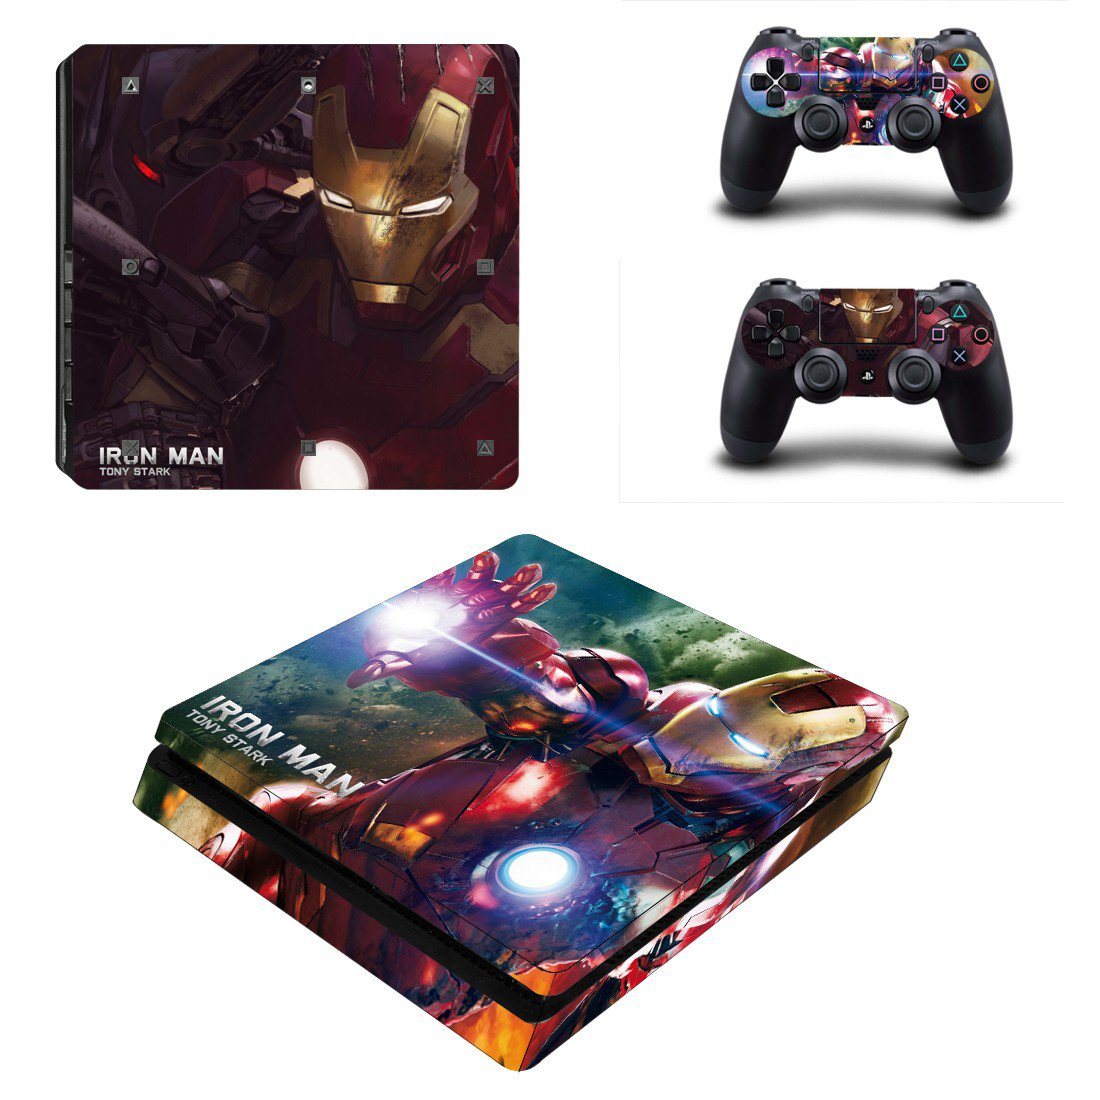 Ironman Tony Stark Play Station 4 slim skin decal for console and 2 controllers